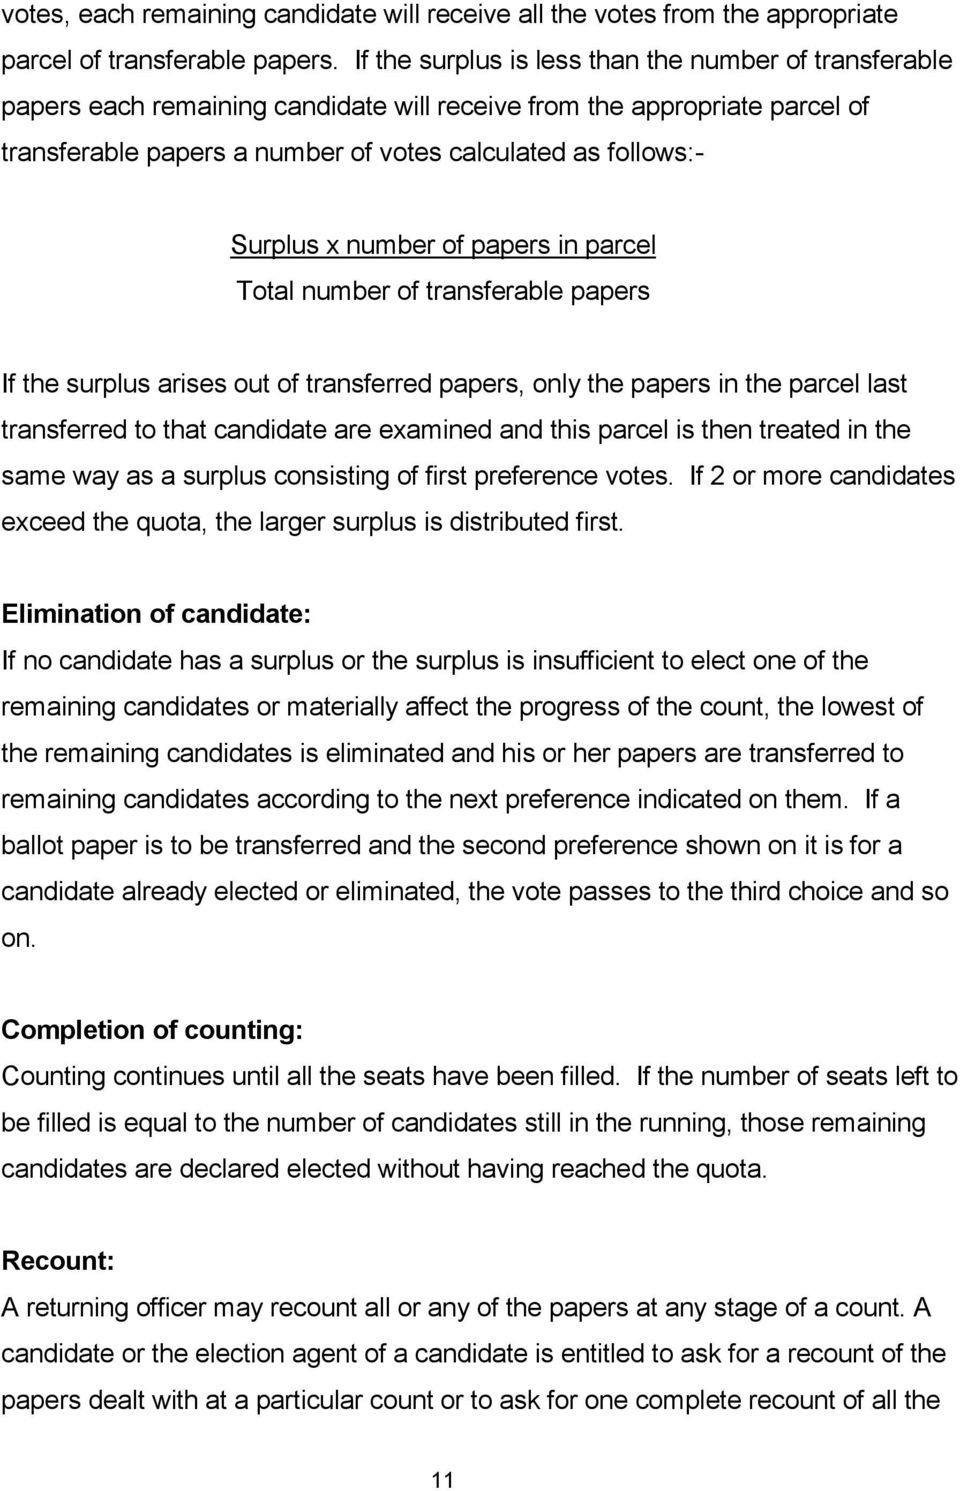 Surplus x number of papers in parcel Total number of transferable papers If the surplus arises out of transferred papers, only the papers in the parcel last transferred to that candidate are examined